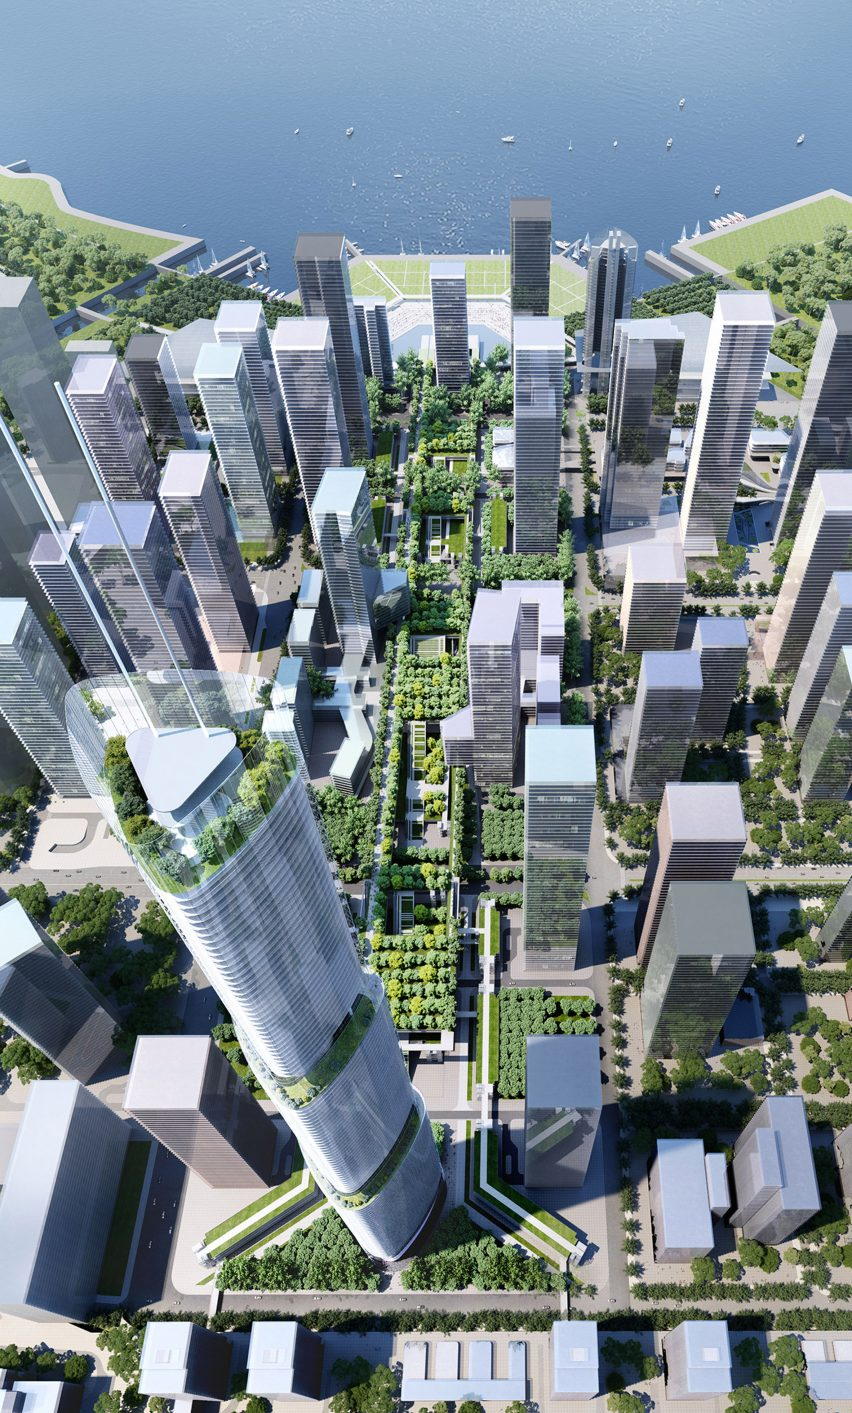 Qianhai masterplan by Rogers Stirk Harbour and Partners